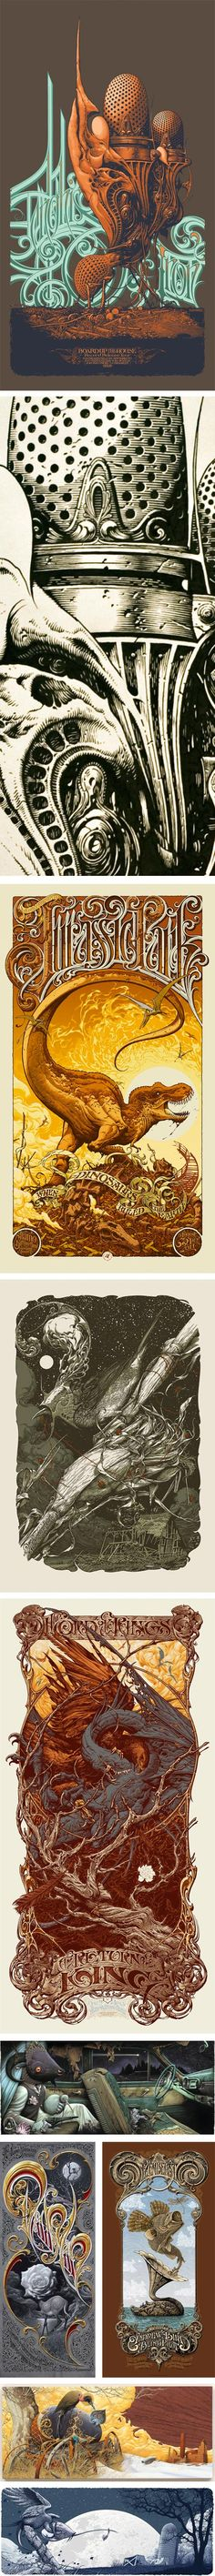 Amazing detail and typography from Aaron Horkey